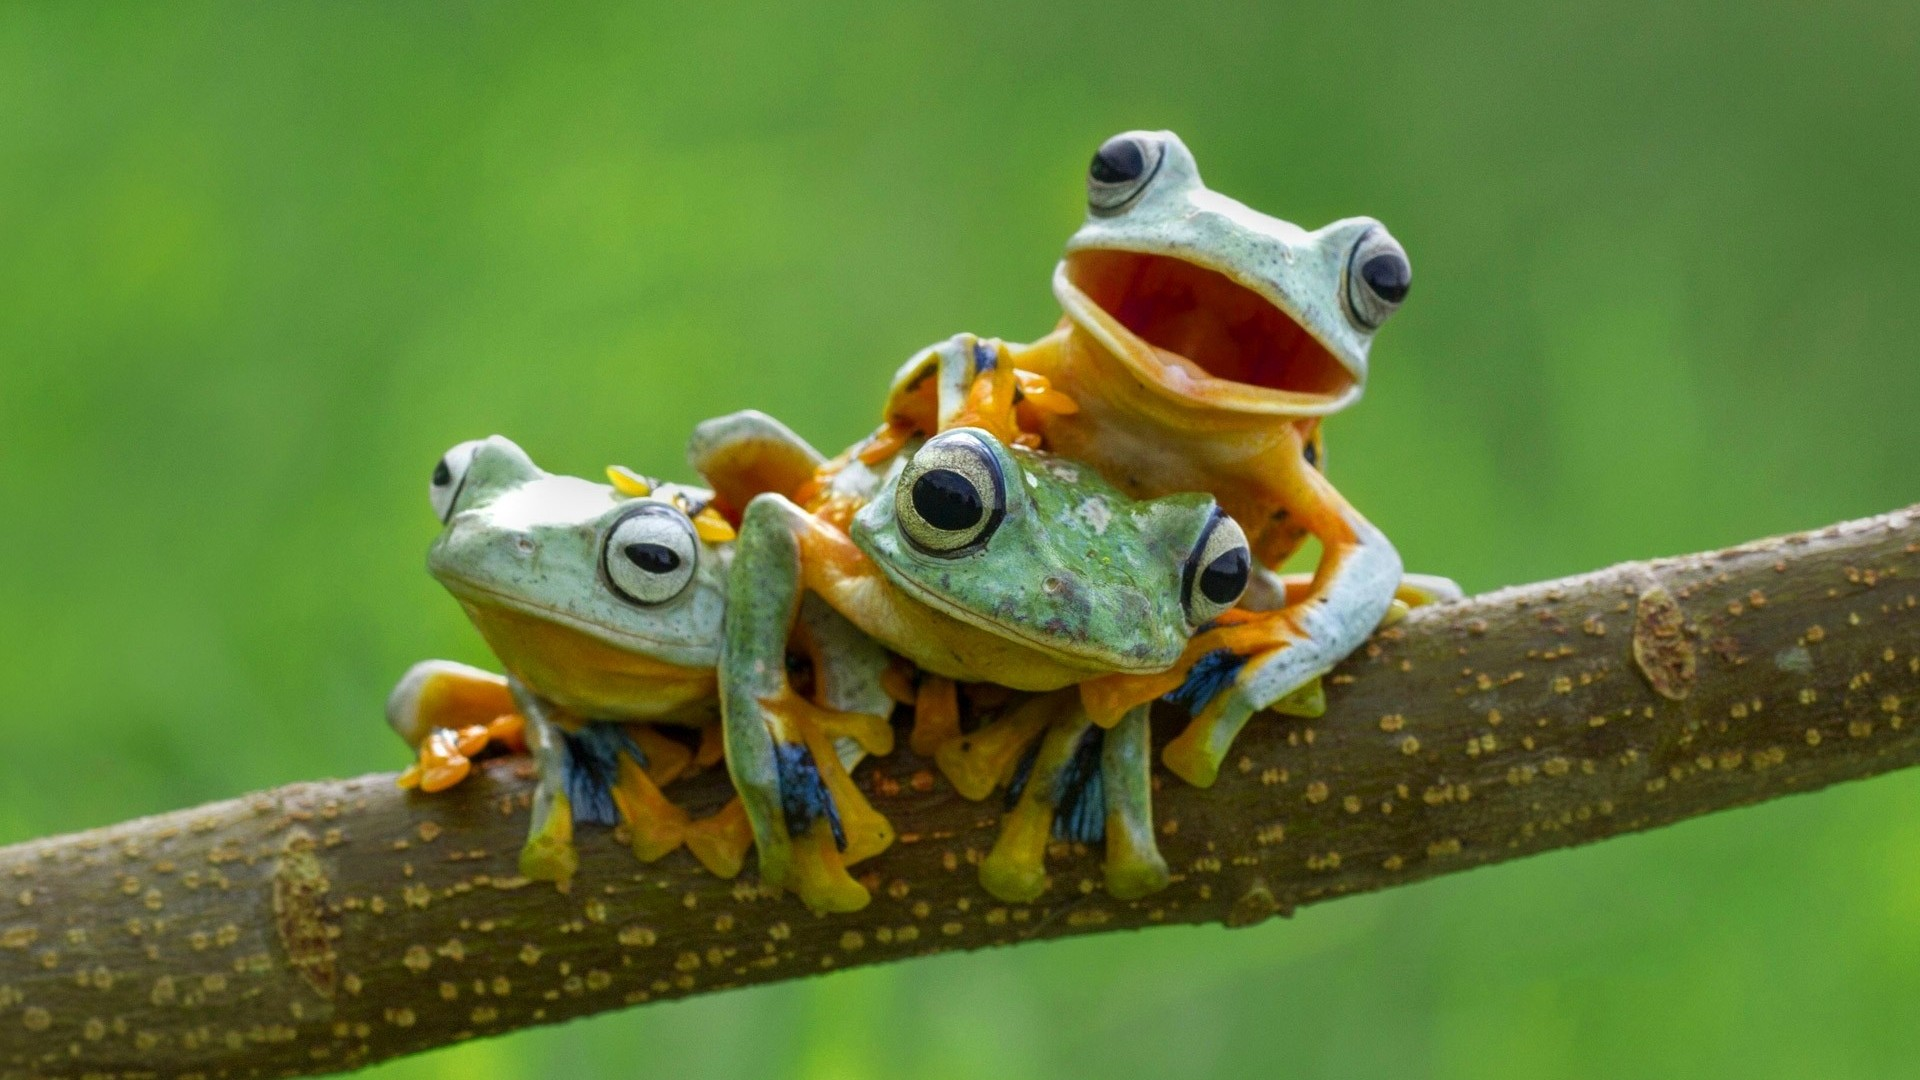 Beautiful Frog Wallpaper Download For Free Goats Animal: Frog HD Wallpapers